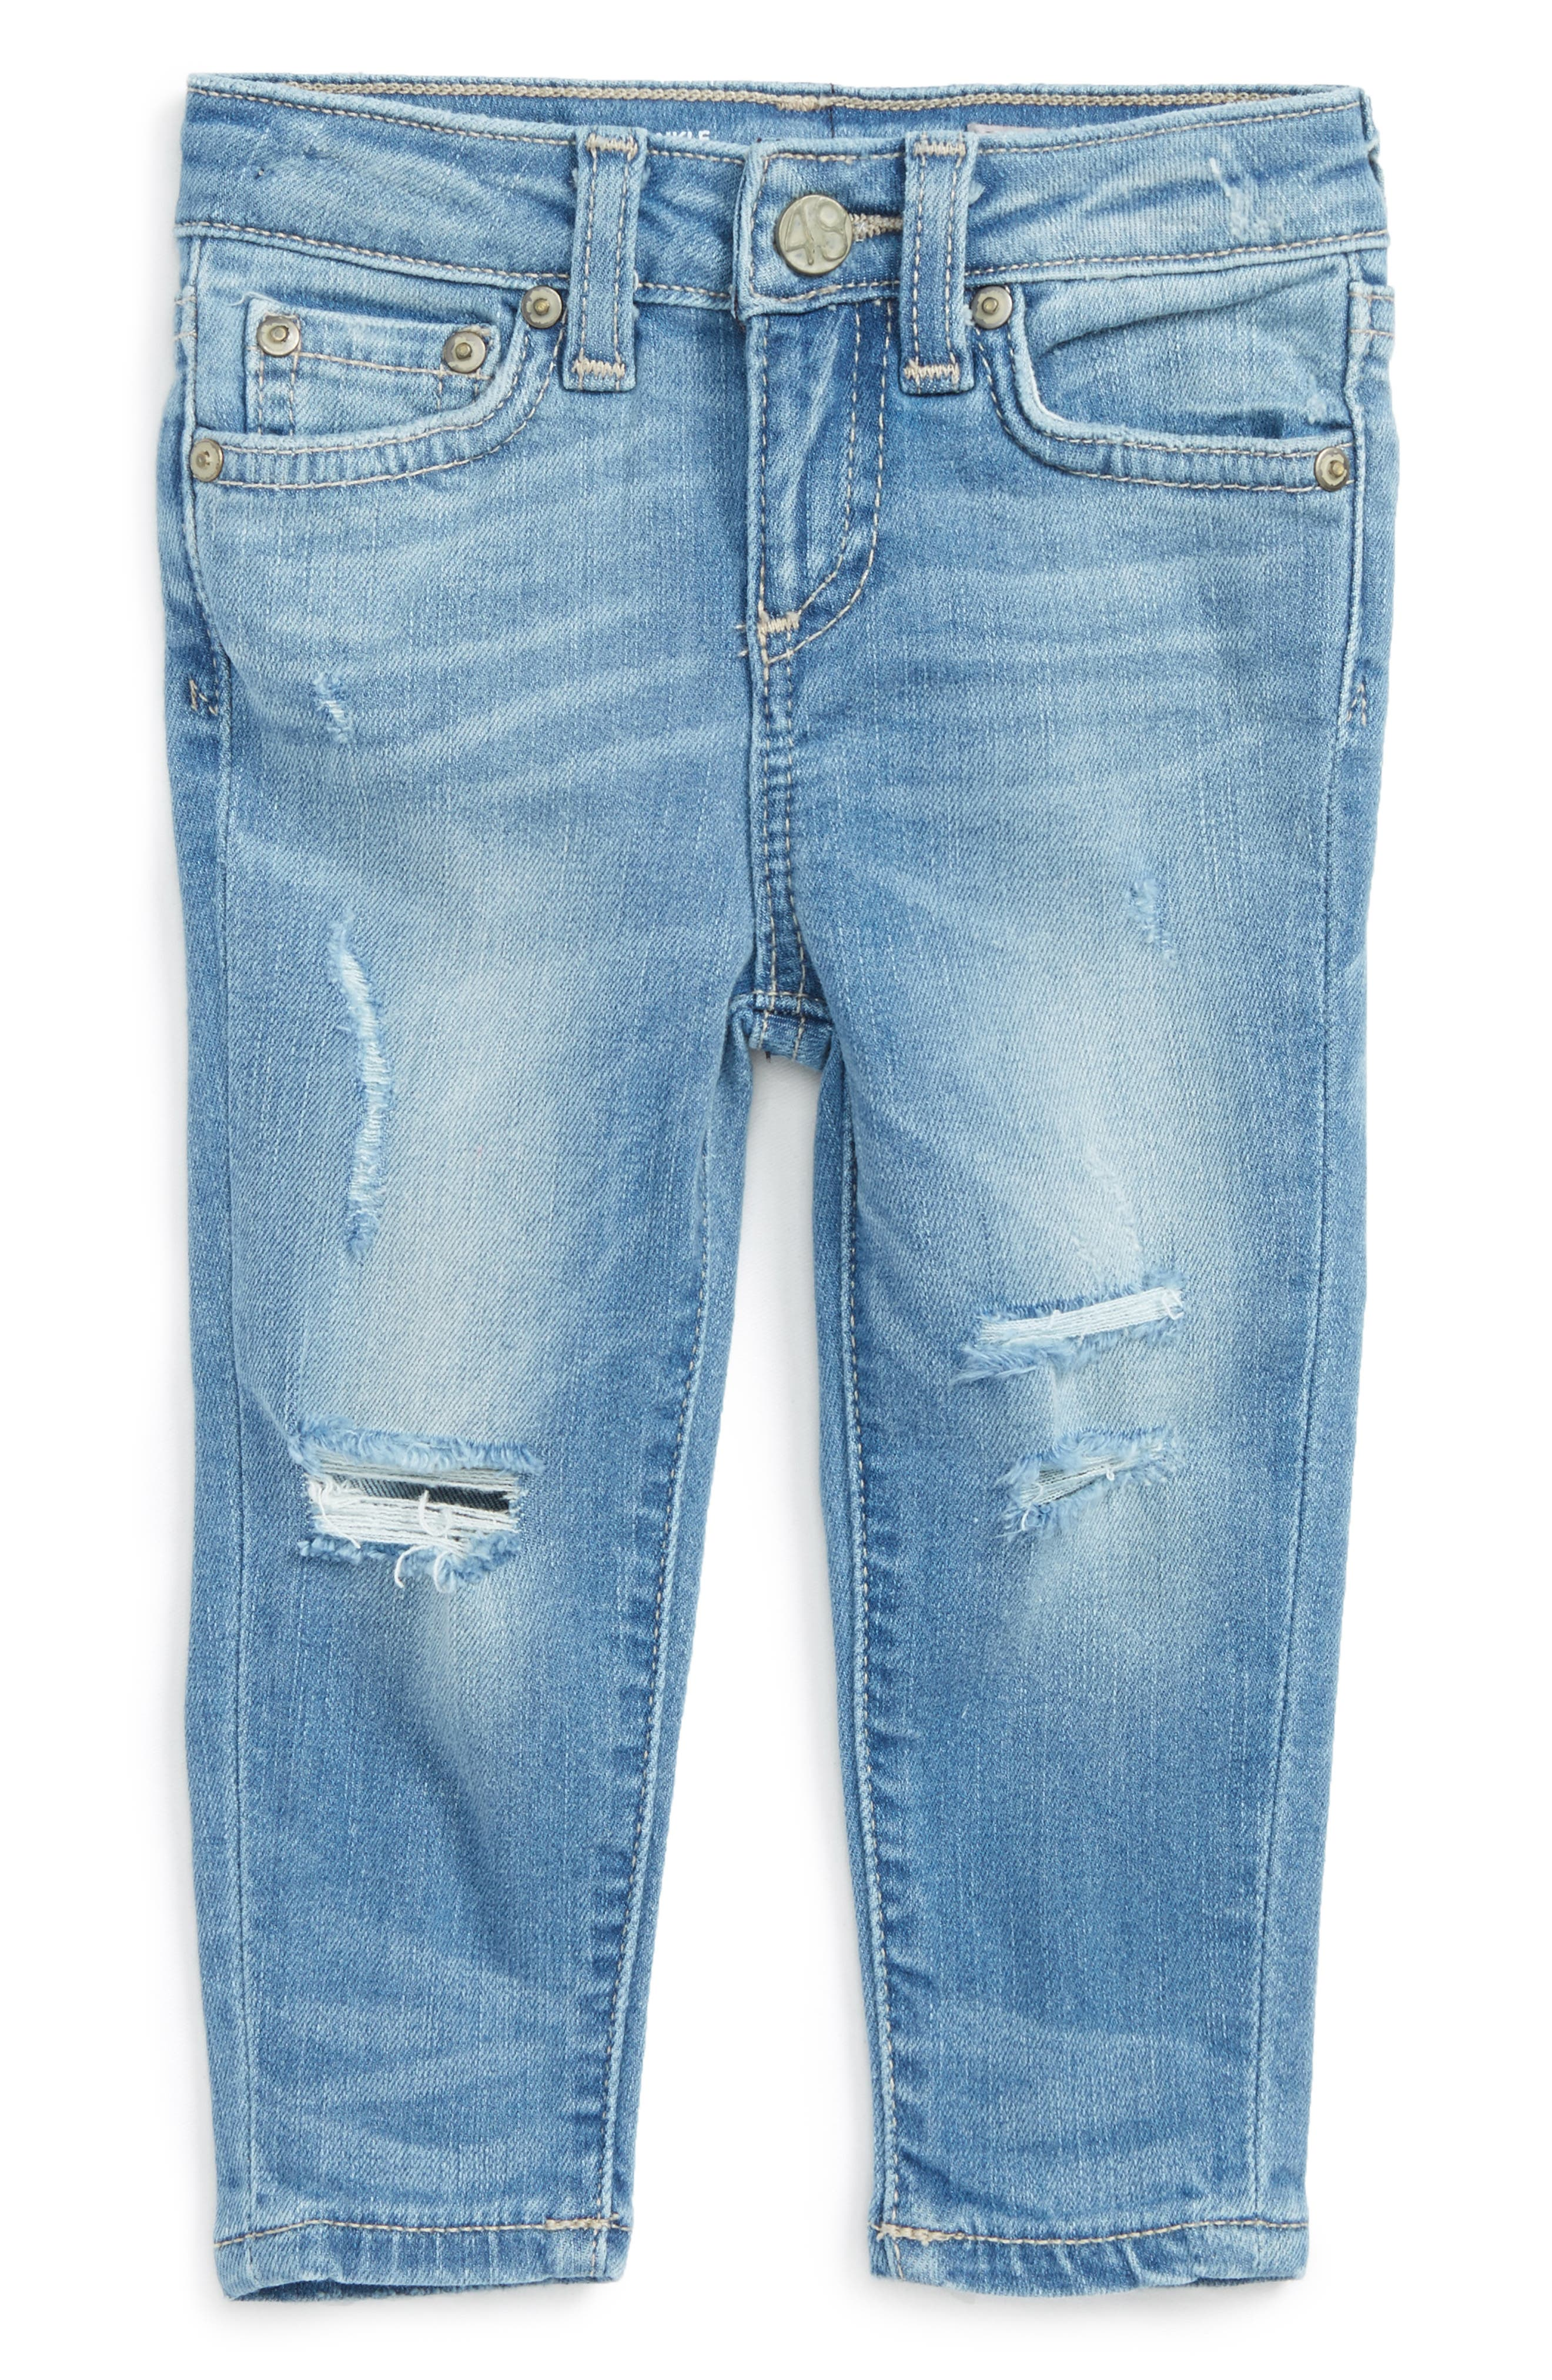 Alternate Image 1 Selected - ag adriano goldschmied kids Ankle Skinny Jeans (Baby Girls)